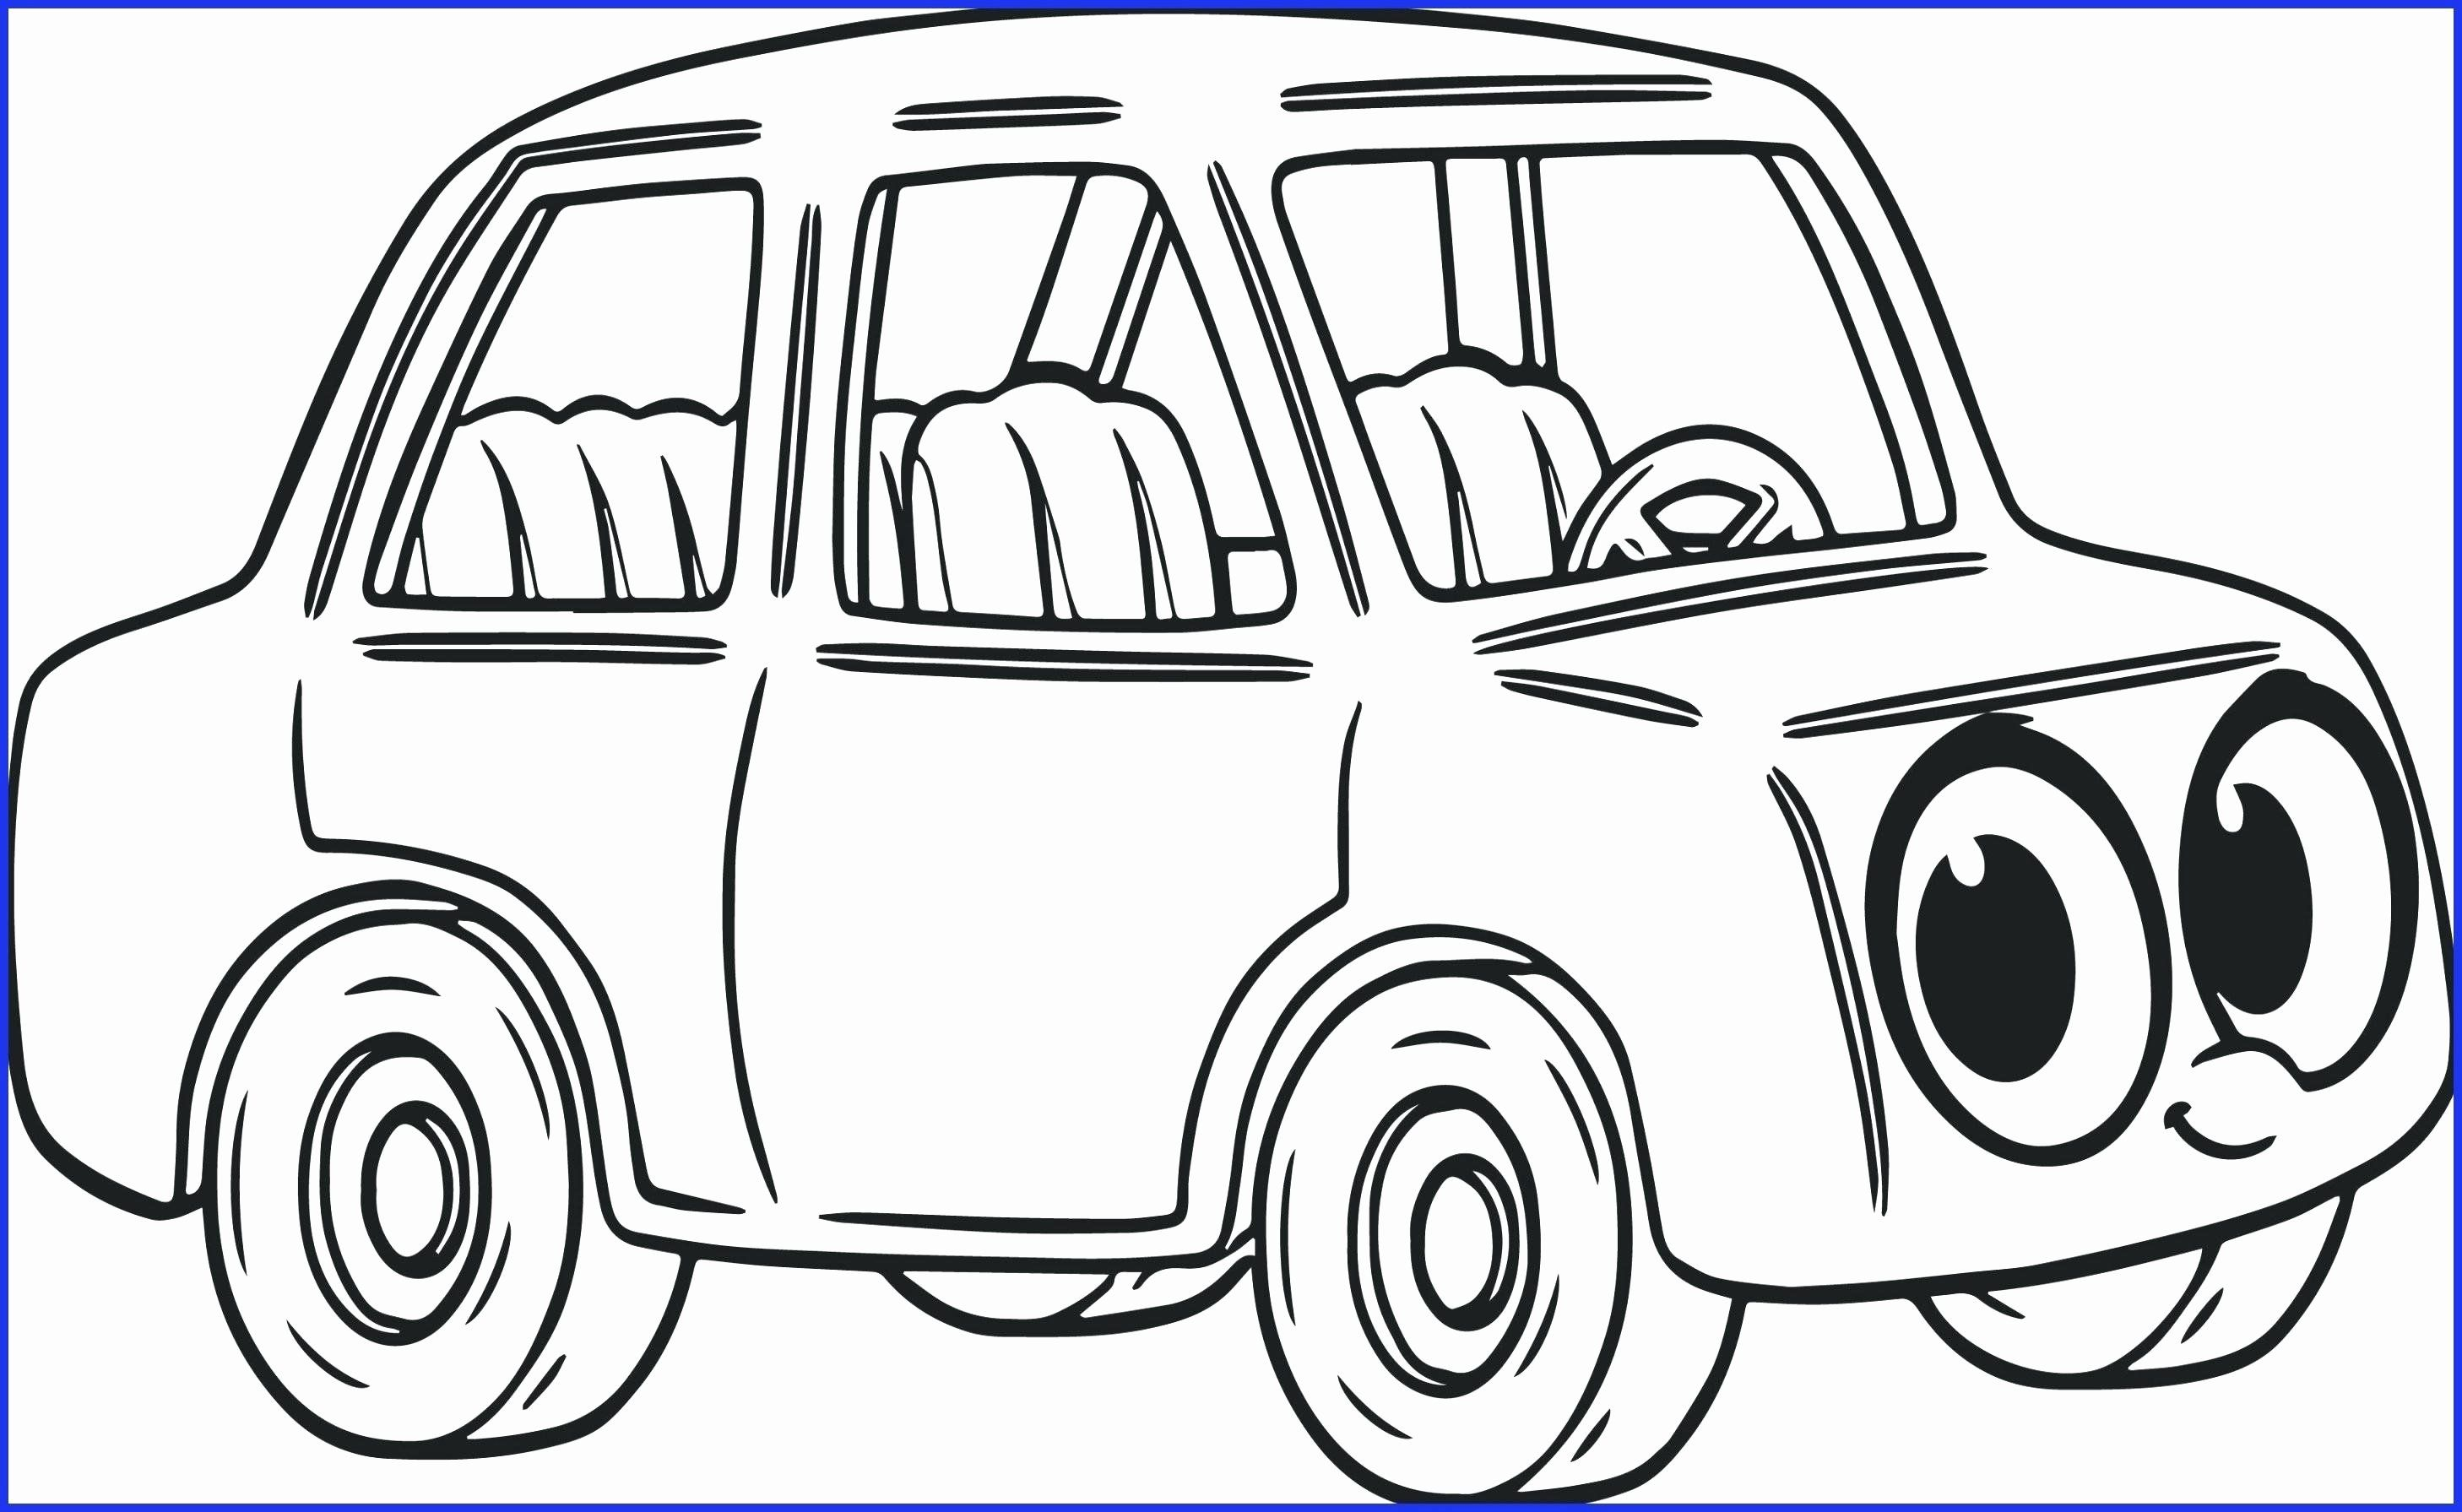 Coloring Cartoon Cars Lovely Hot Wheels Cars Coloring Pages Album Sabadaphnecottage Truck Coloring Pages Cars Coloring Pages Cartoon Coloring Pages